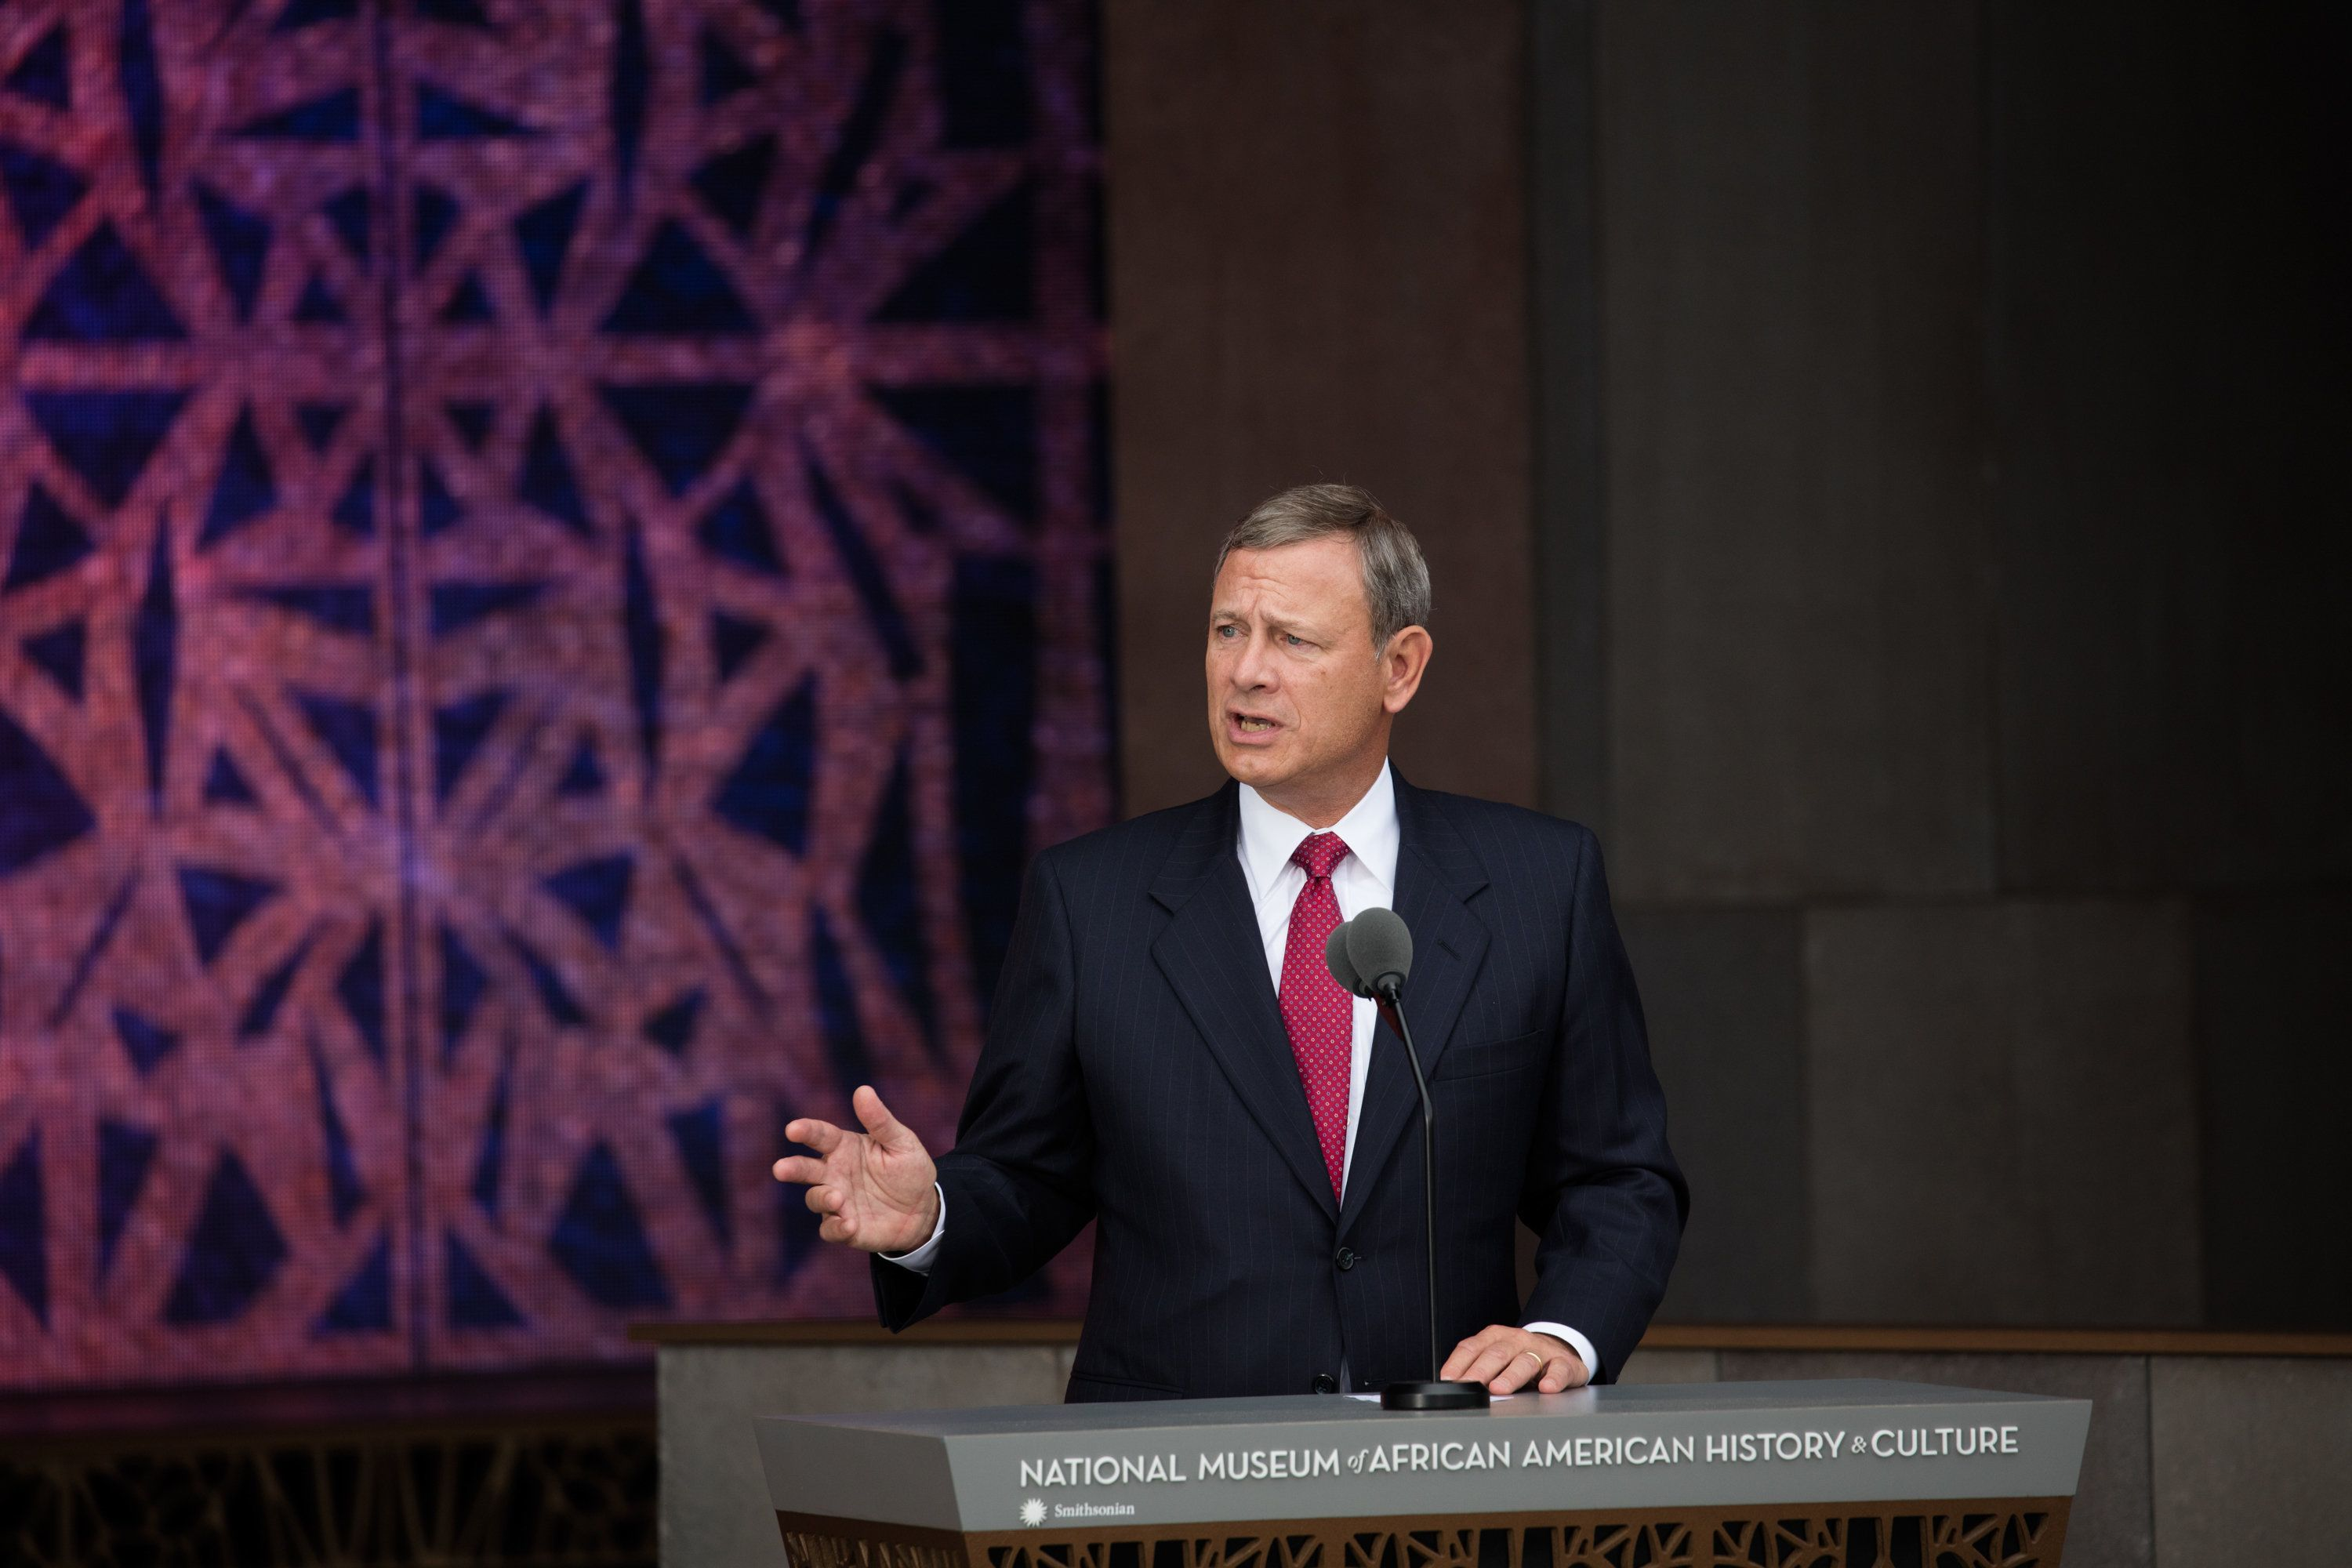 Supreme Court Chief Justice John Roberts speaks at the opening of the National Museum of African American History and Culture, Washington DC, September 24, 2016. (Photo by David Hume Kennerly via Bank of America/Getty Images)